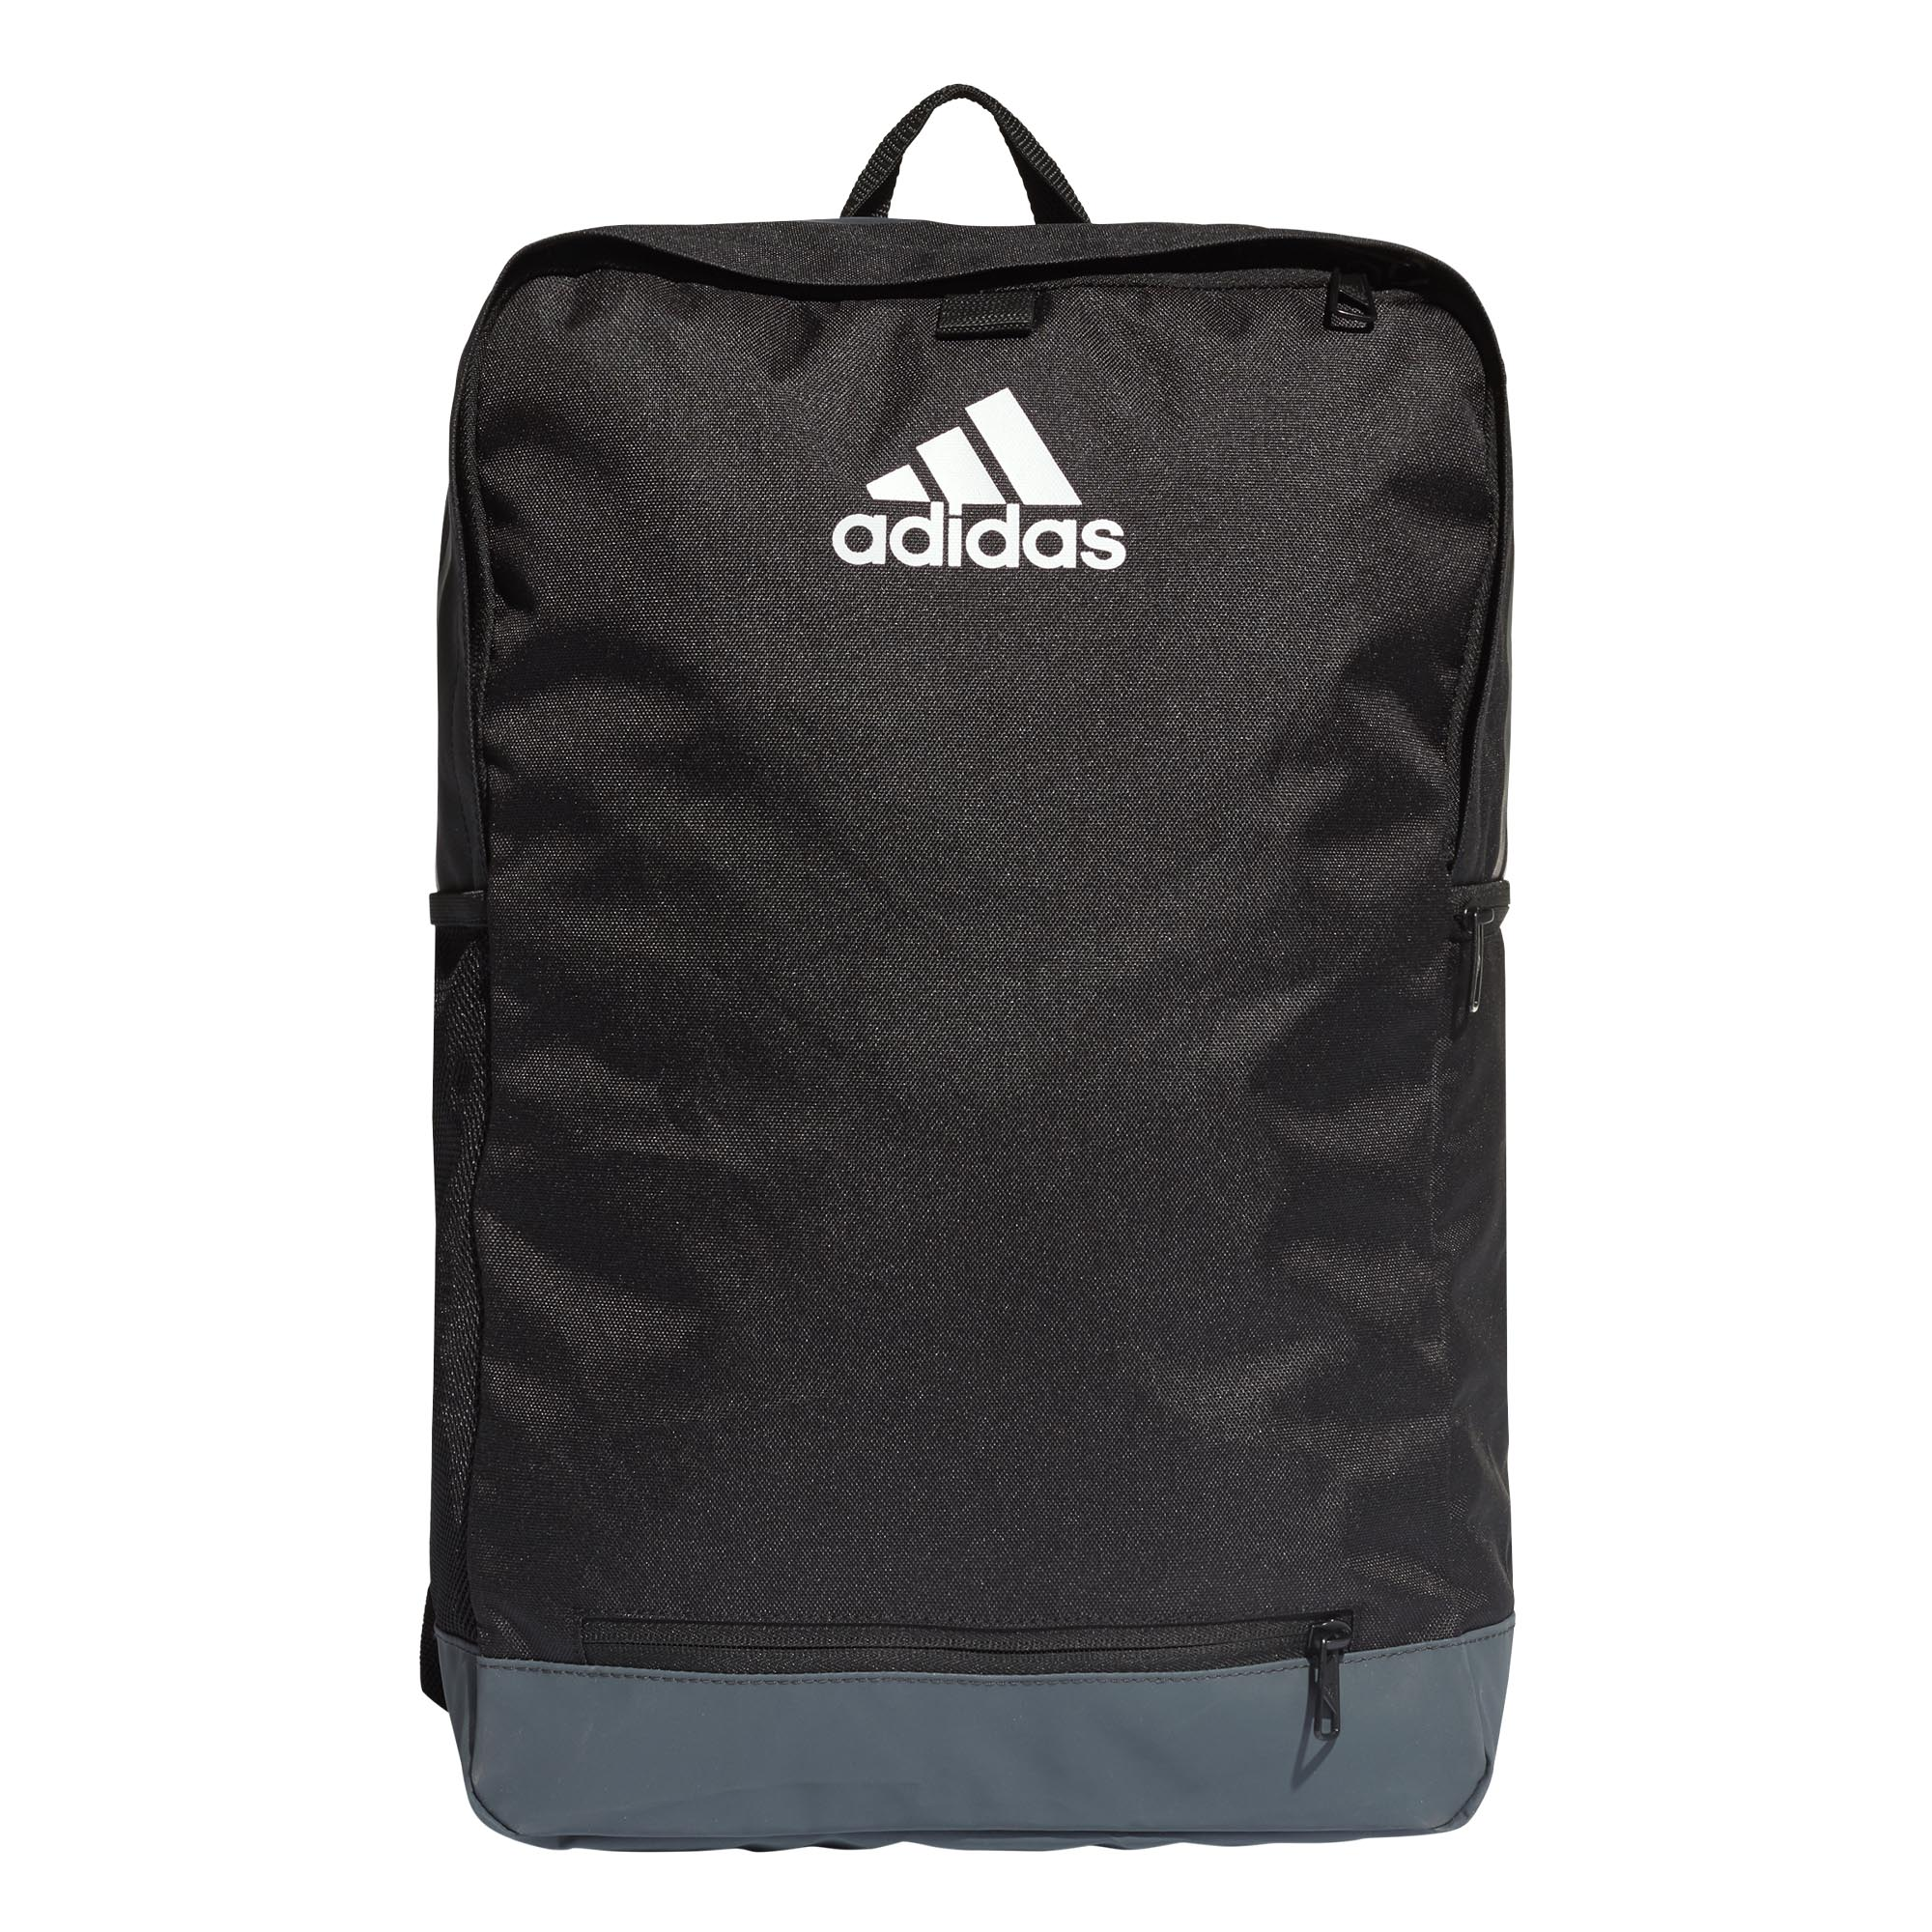 fe12c19f6e0a6 Details about adidas Tiro Football Backpack With Ballnet Rucksack Sports Bag  Black